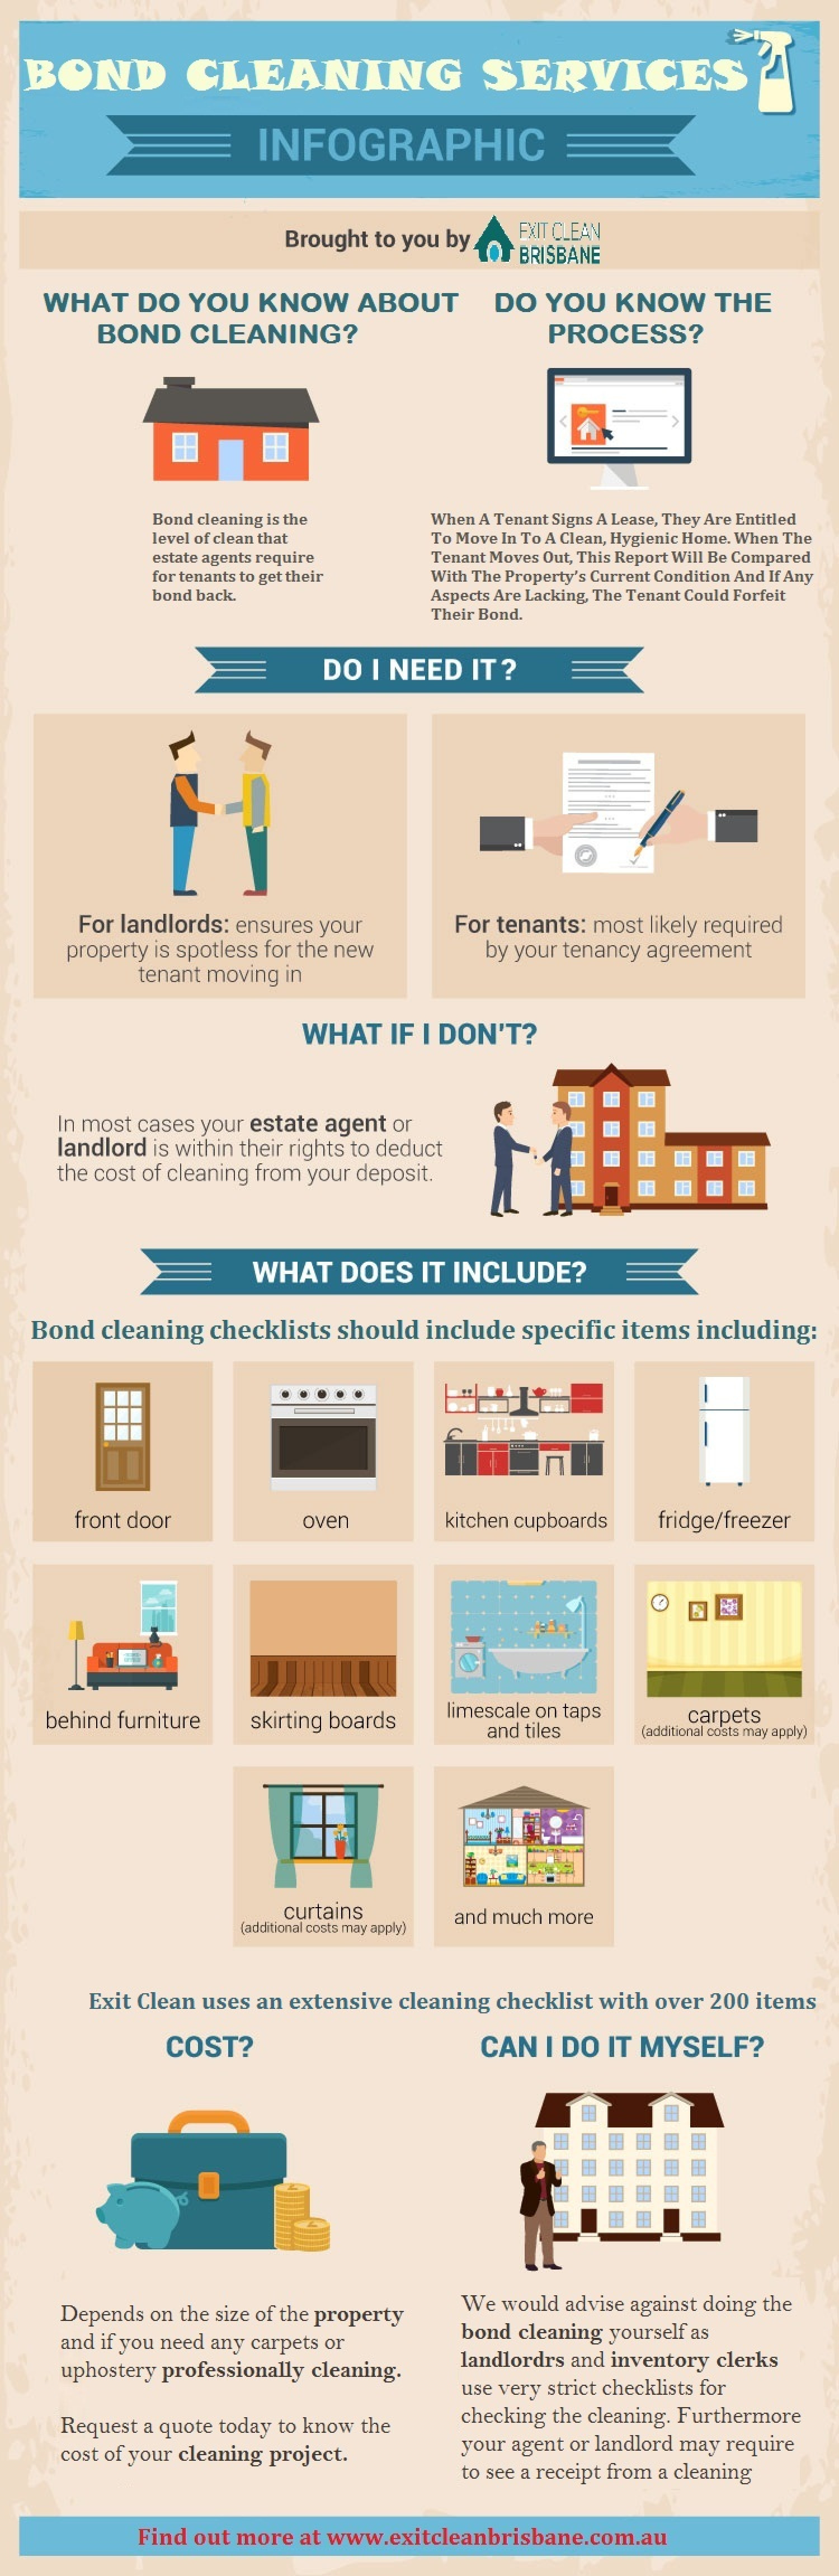 Bond Cleaning Services by Exit Clean Brisbane Infographic